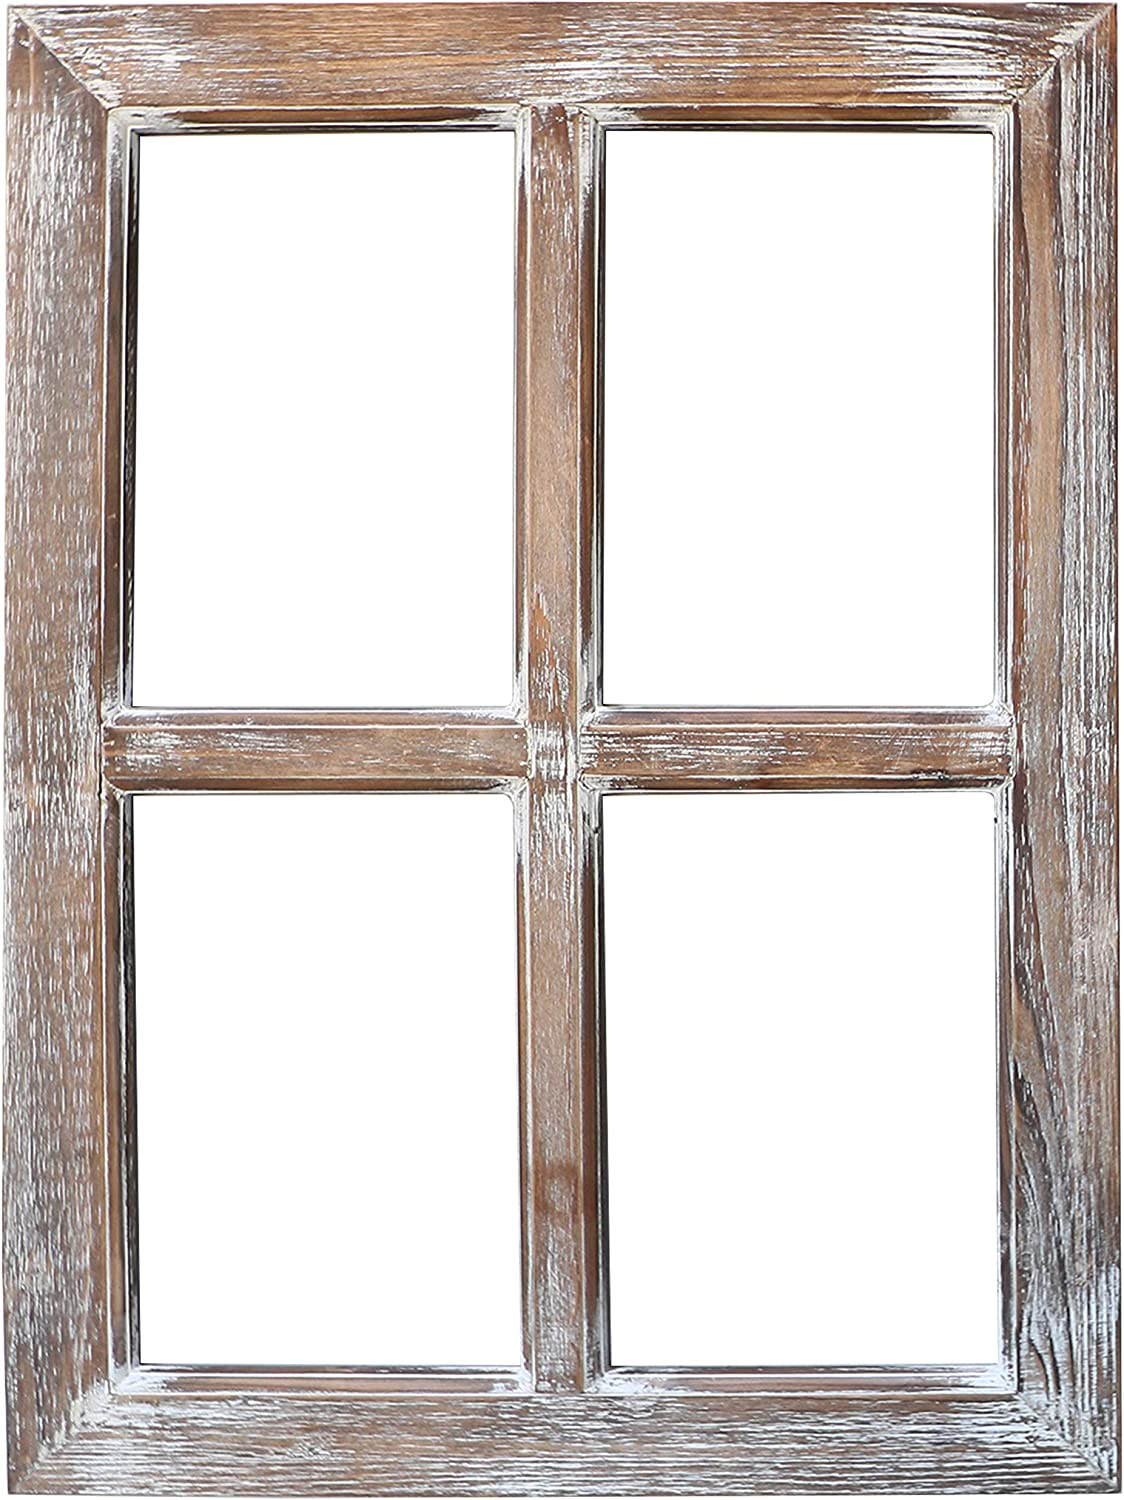 "Barnyard Designs Rustic Barn Wood Window Frame, Decorative Country Farmhouse Home Wall Decor, Wooden Window Pane for Living Room, Bedroom, or Fireplace Mantel, 1 Frame, 18"" x 24"""